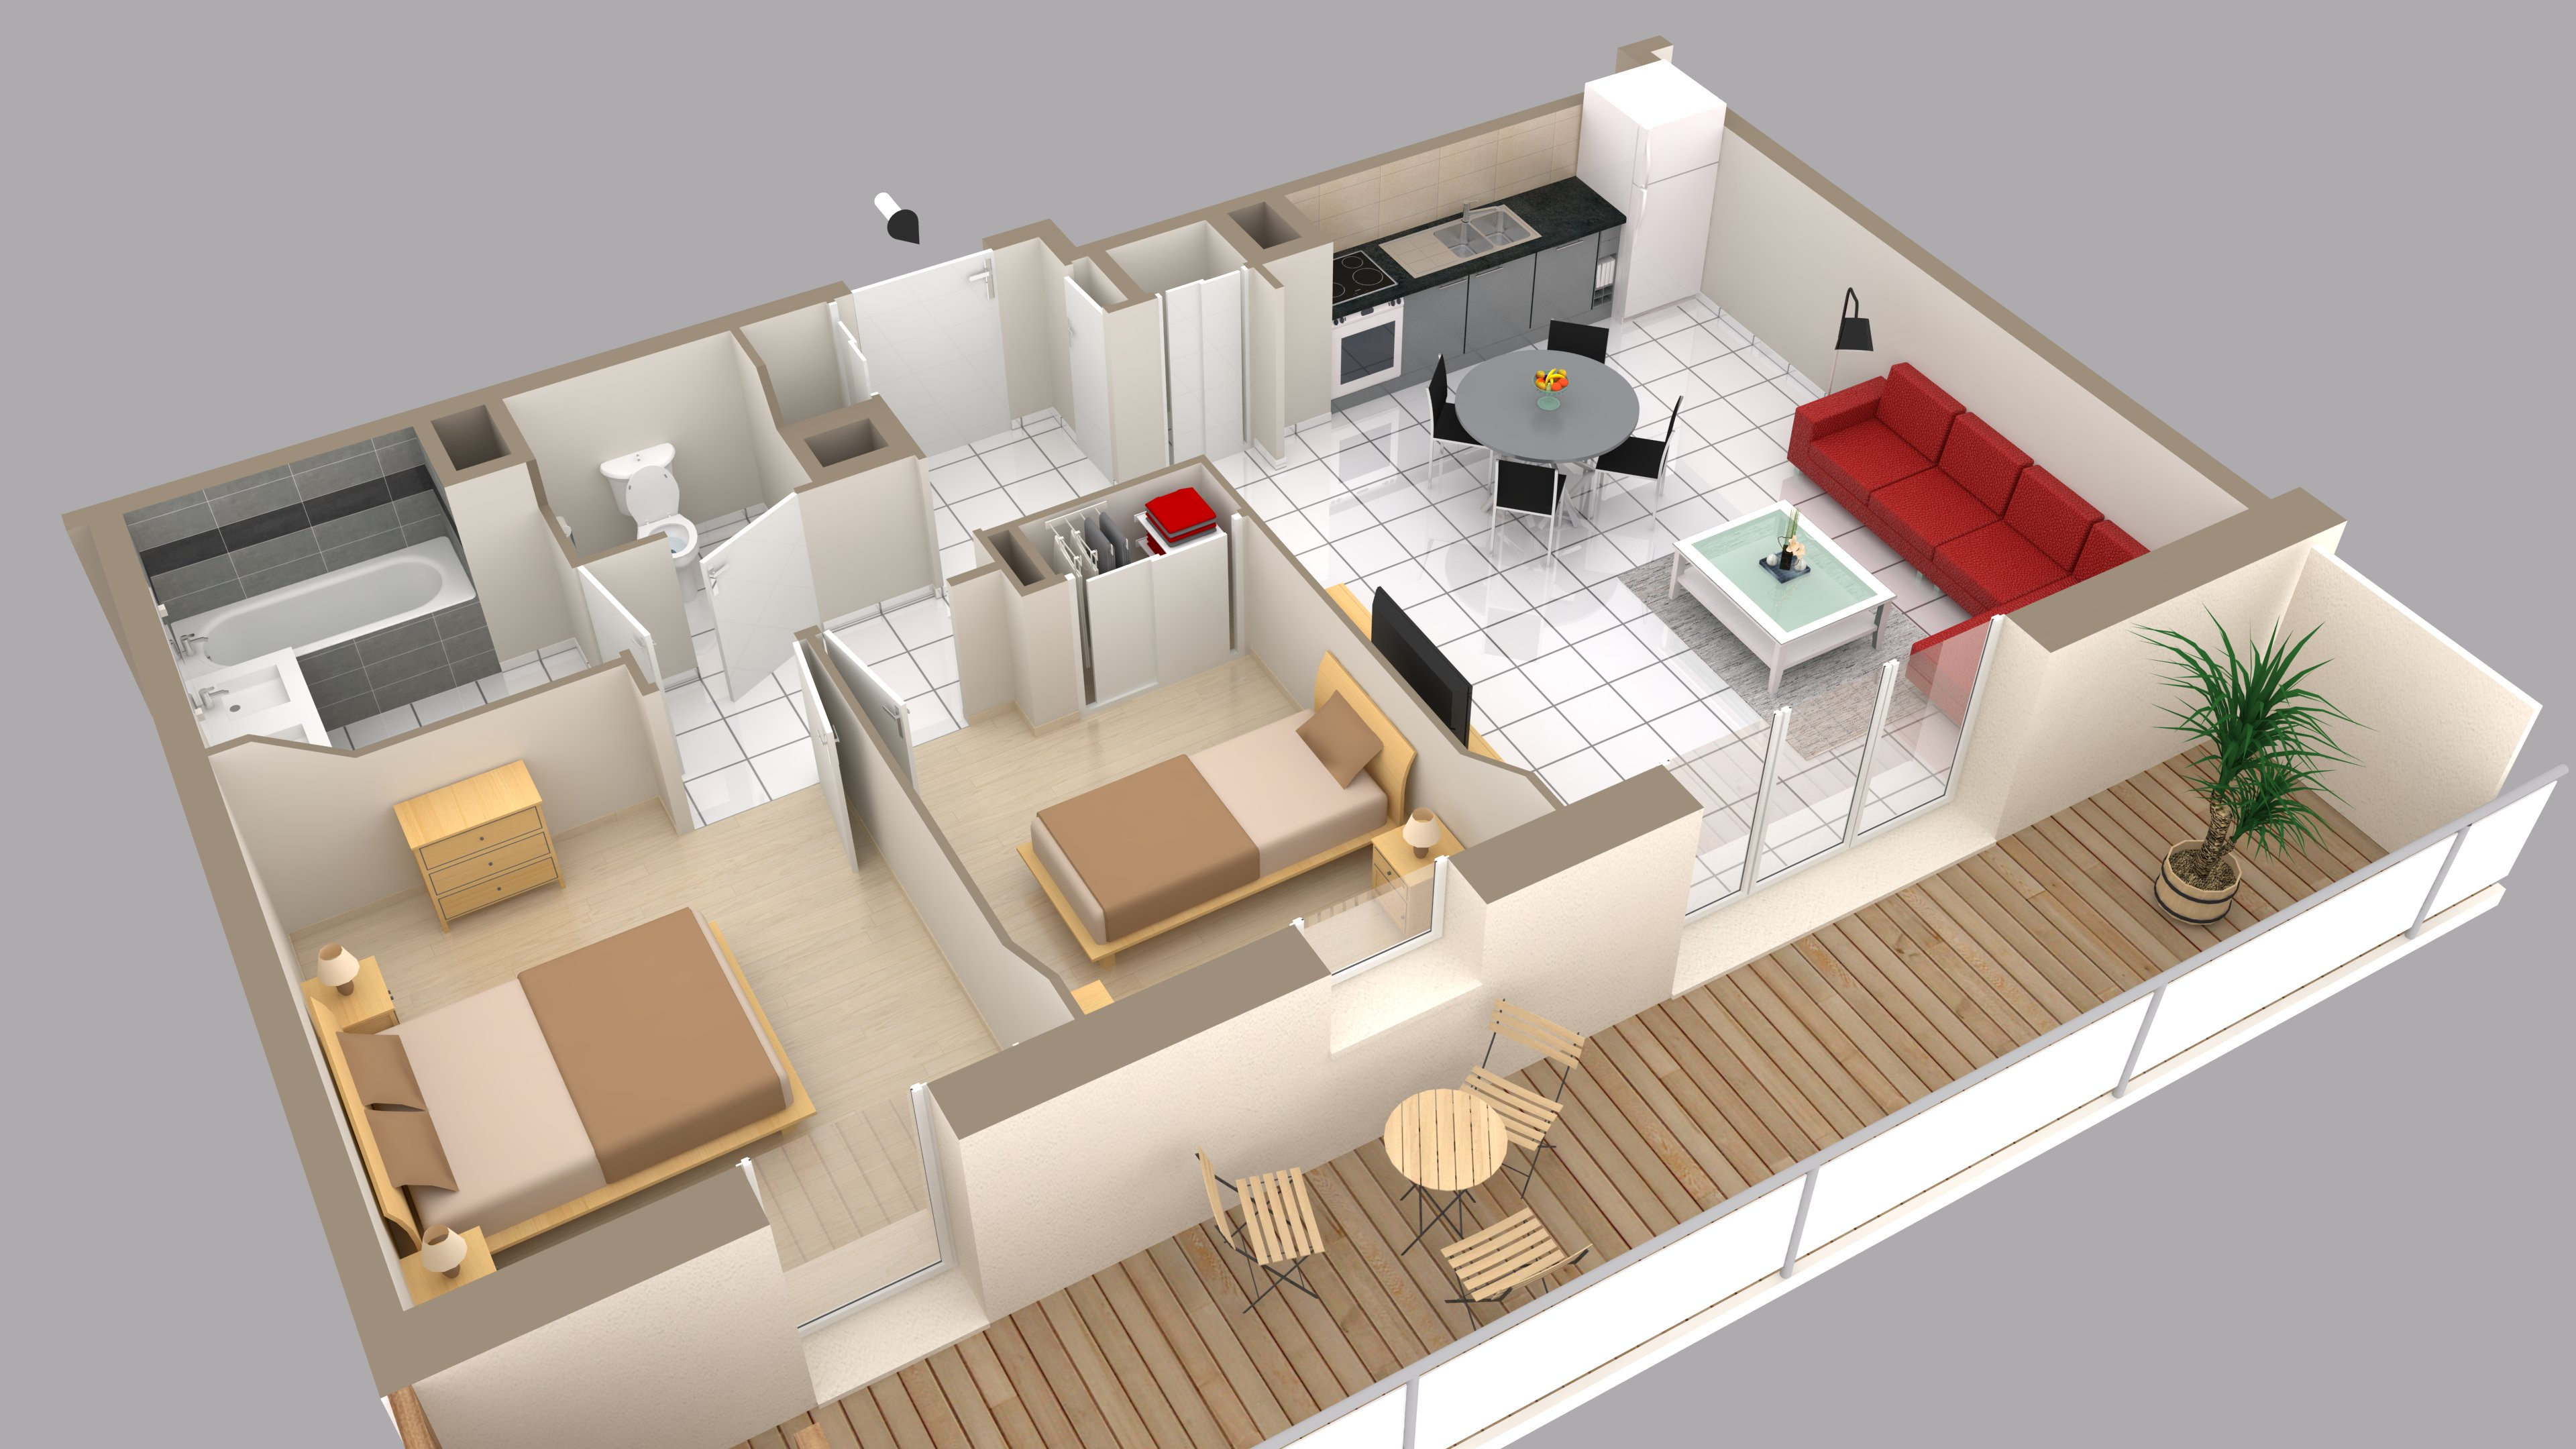 3d contacts fiche la vue d 39 ensemble meubl e en perspective for Plan interieur maison en d